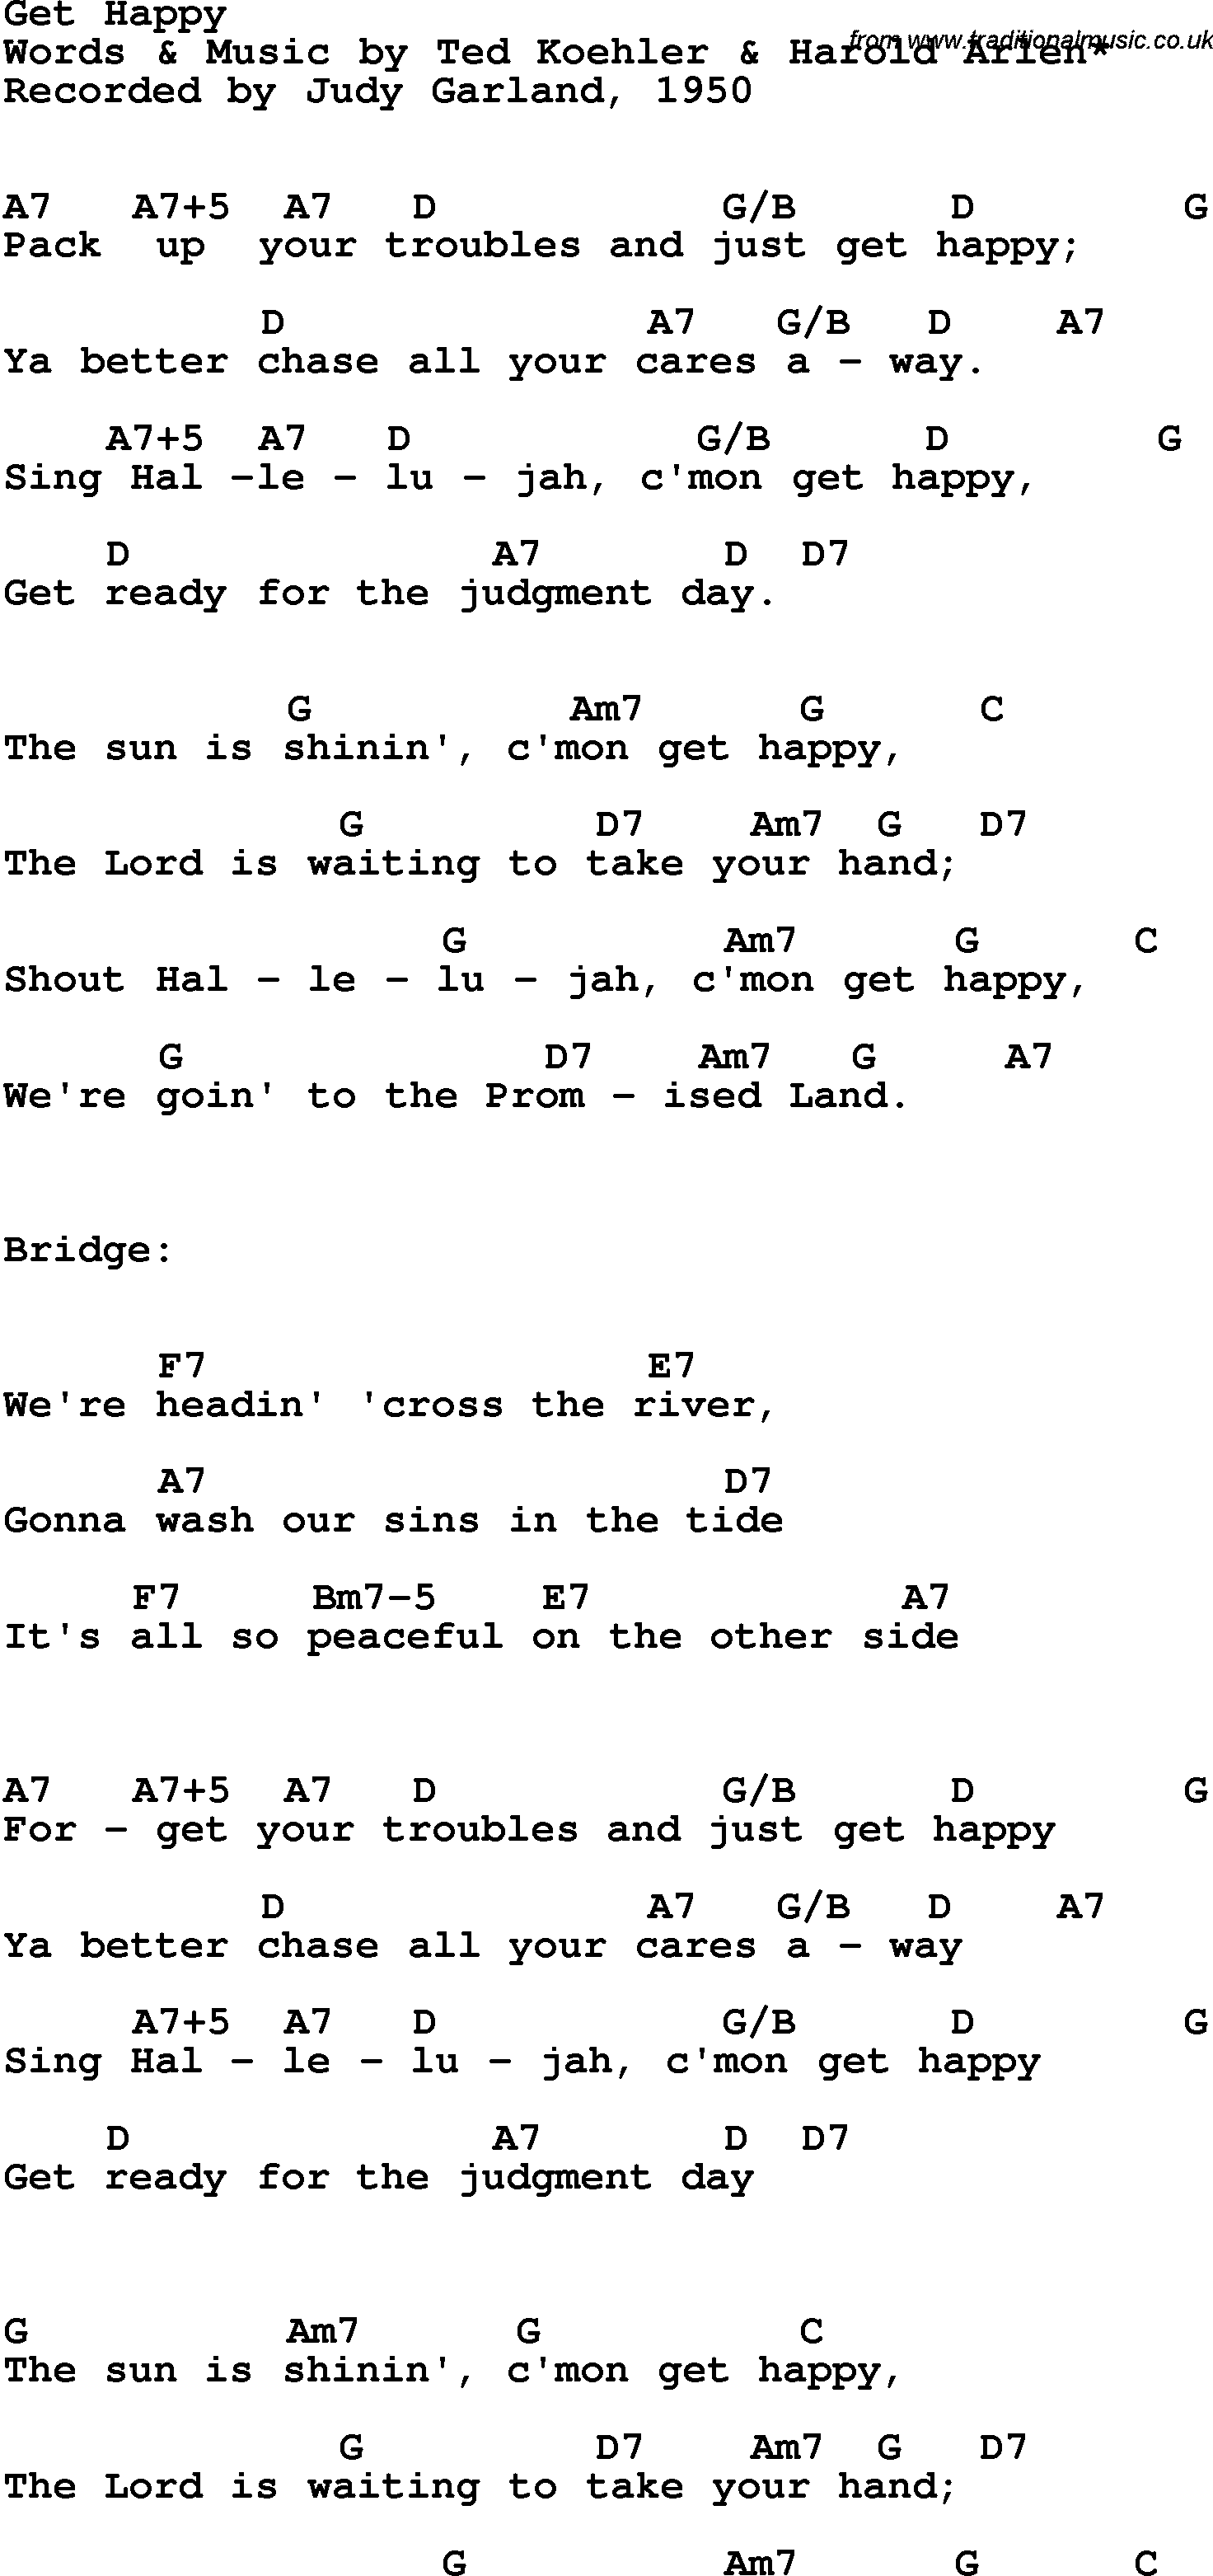 Song Lyrics With Guitar Chords For Get Happy Judy Garland 1950